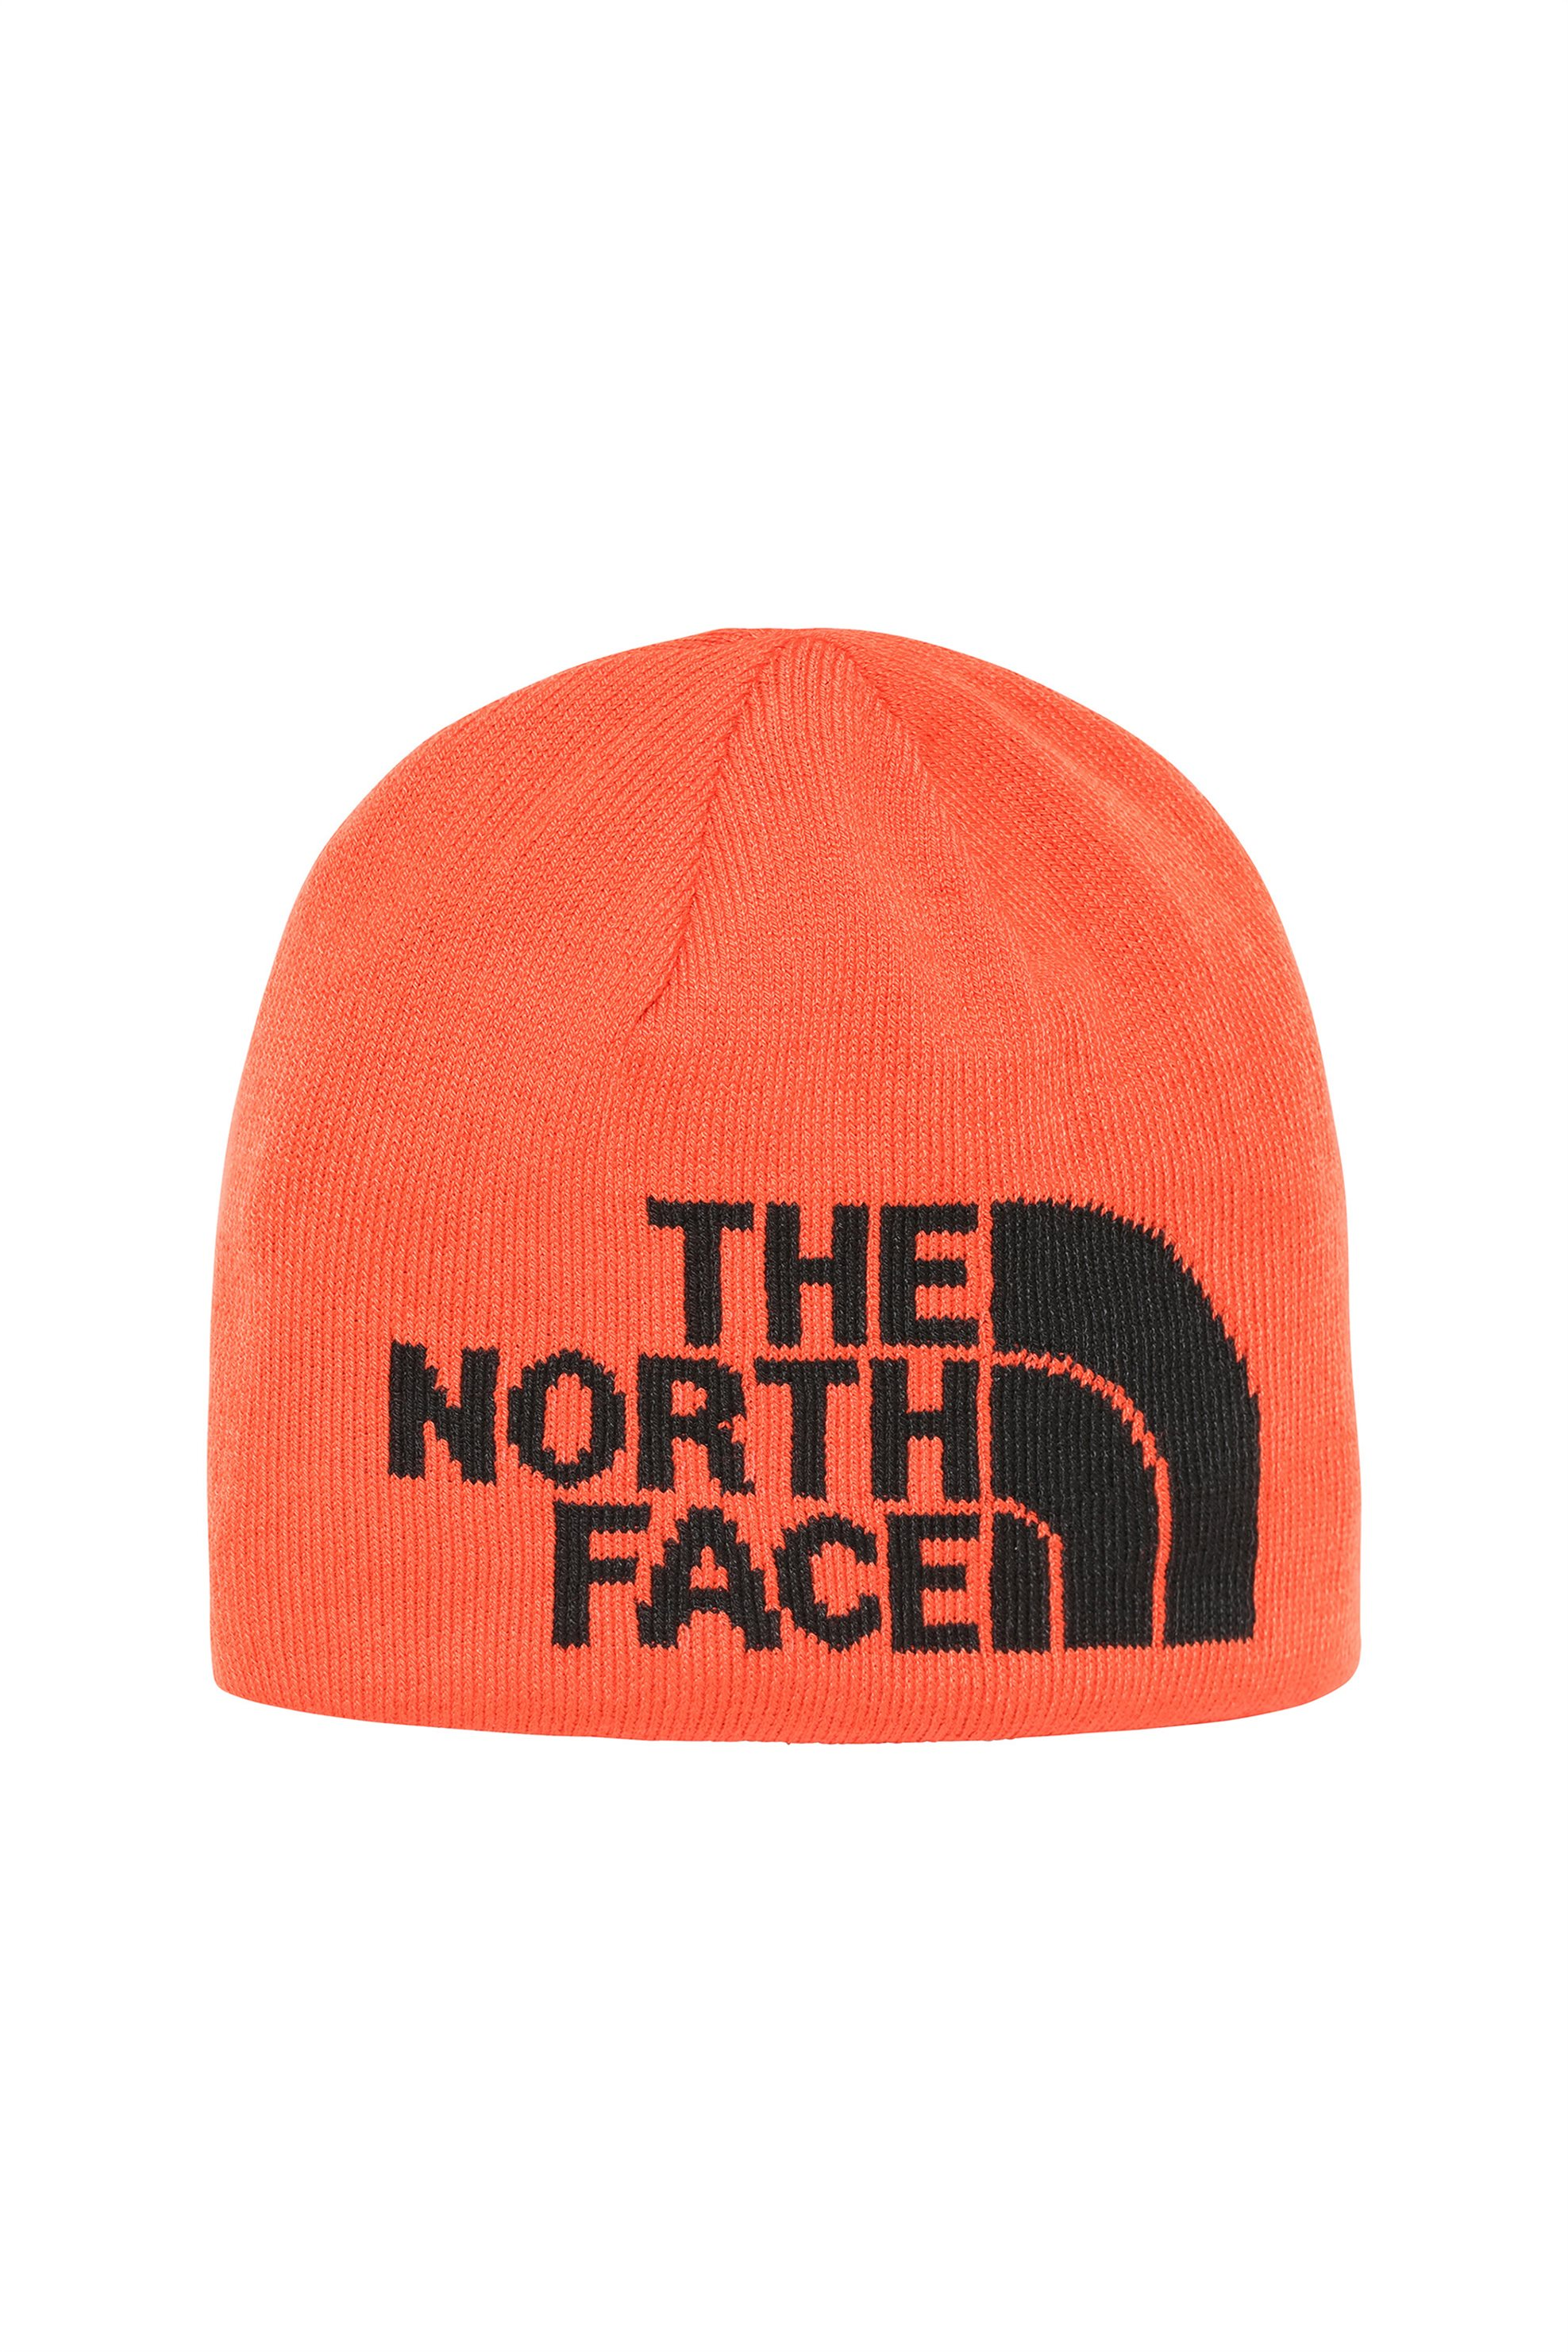 The North Face unisex σκούφος ''Highline Beanie'' - NF00A5WGSH91 - Πορτοκαλί